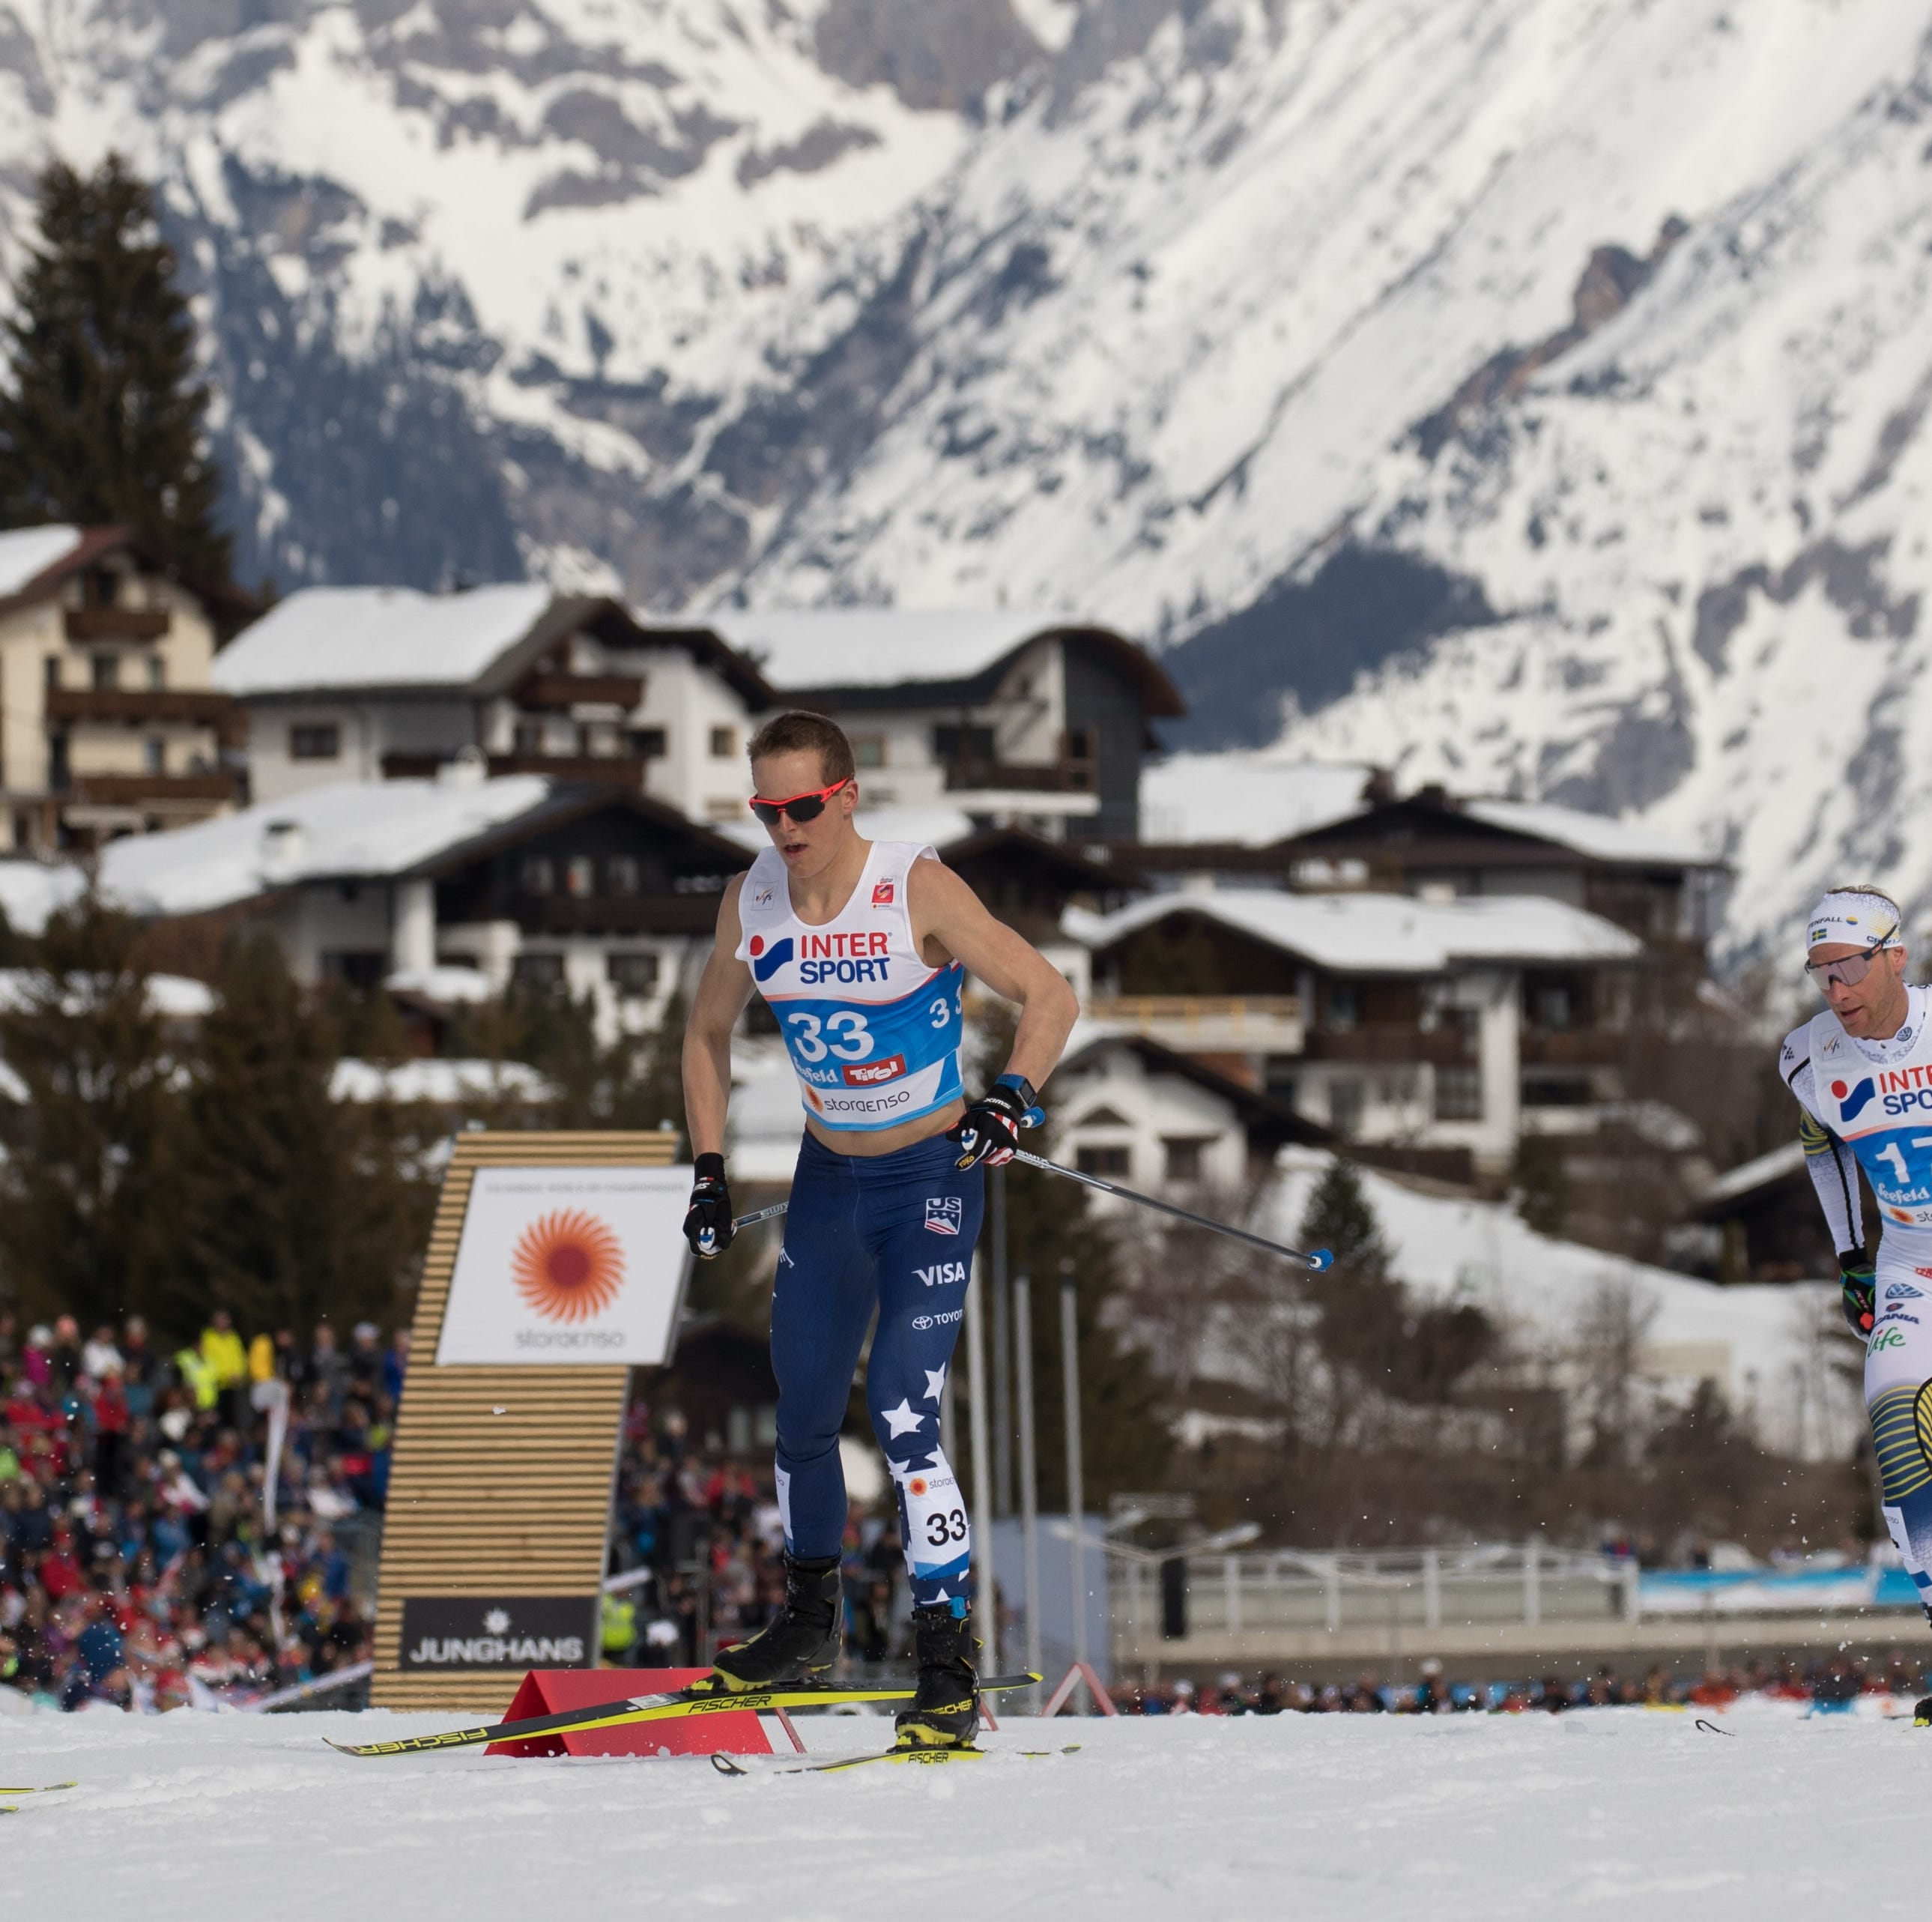 Cross-country skier Adam Martin of Wausau competed in the World Championship. What's next?